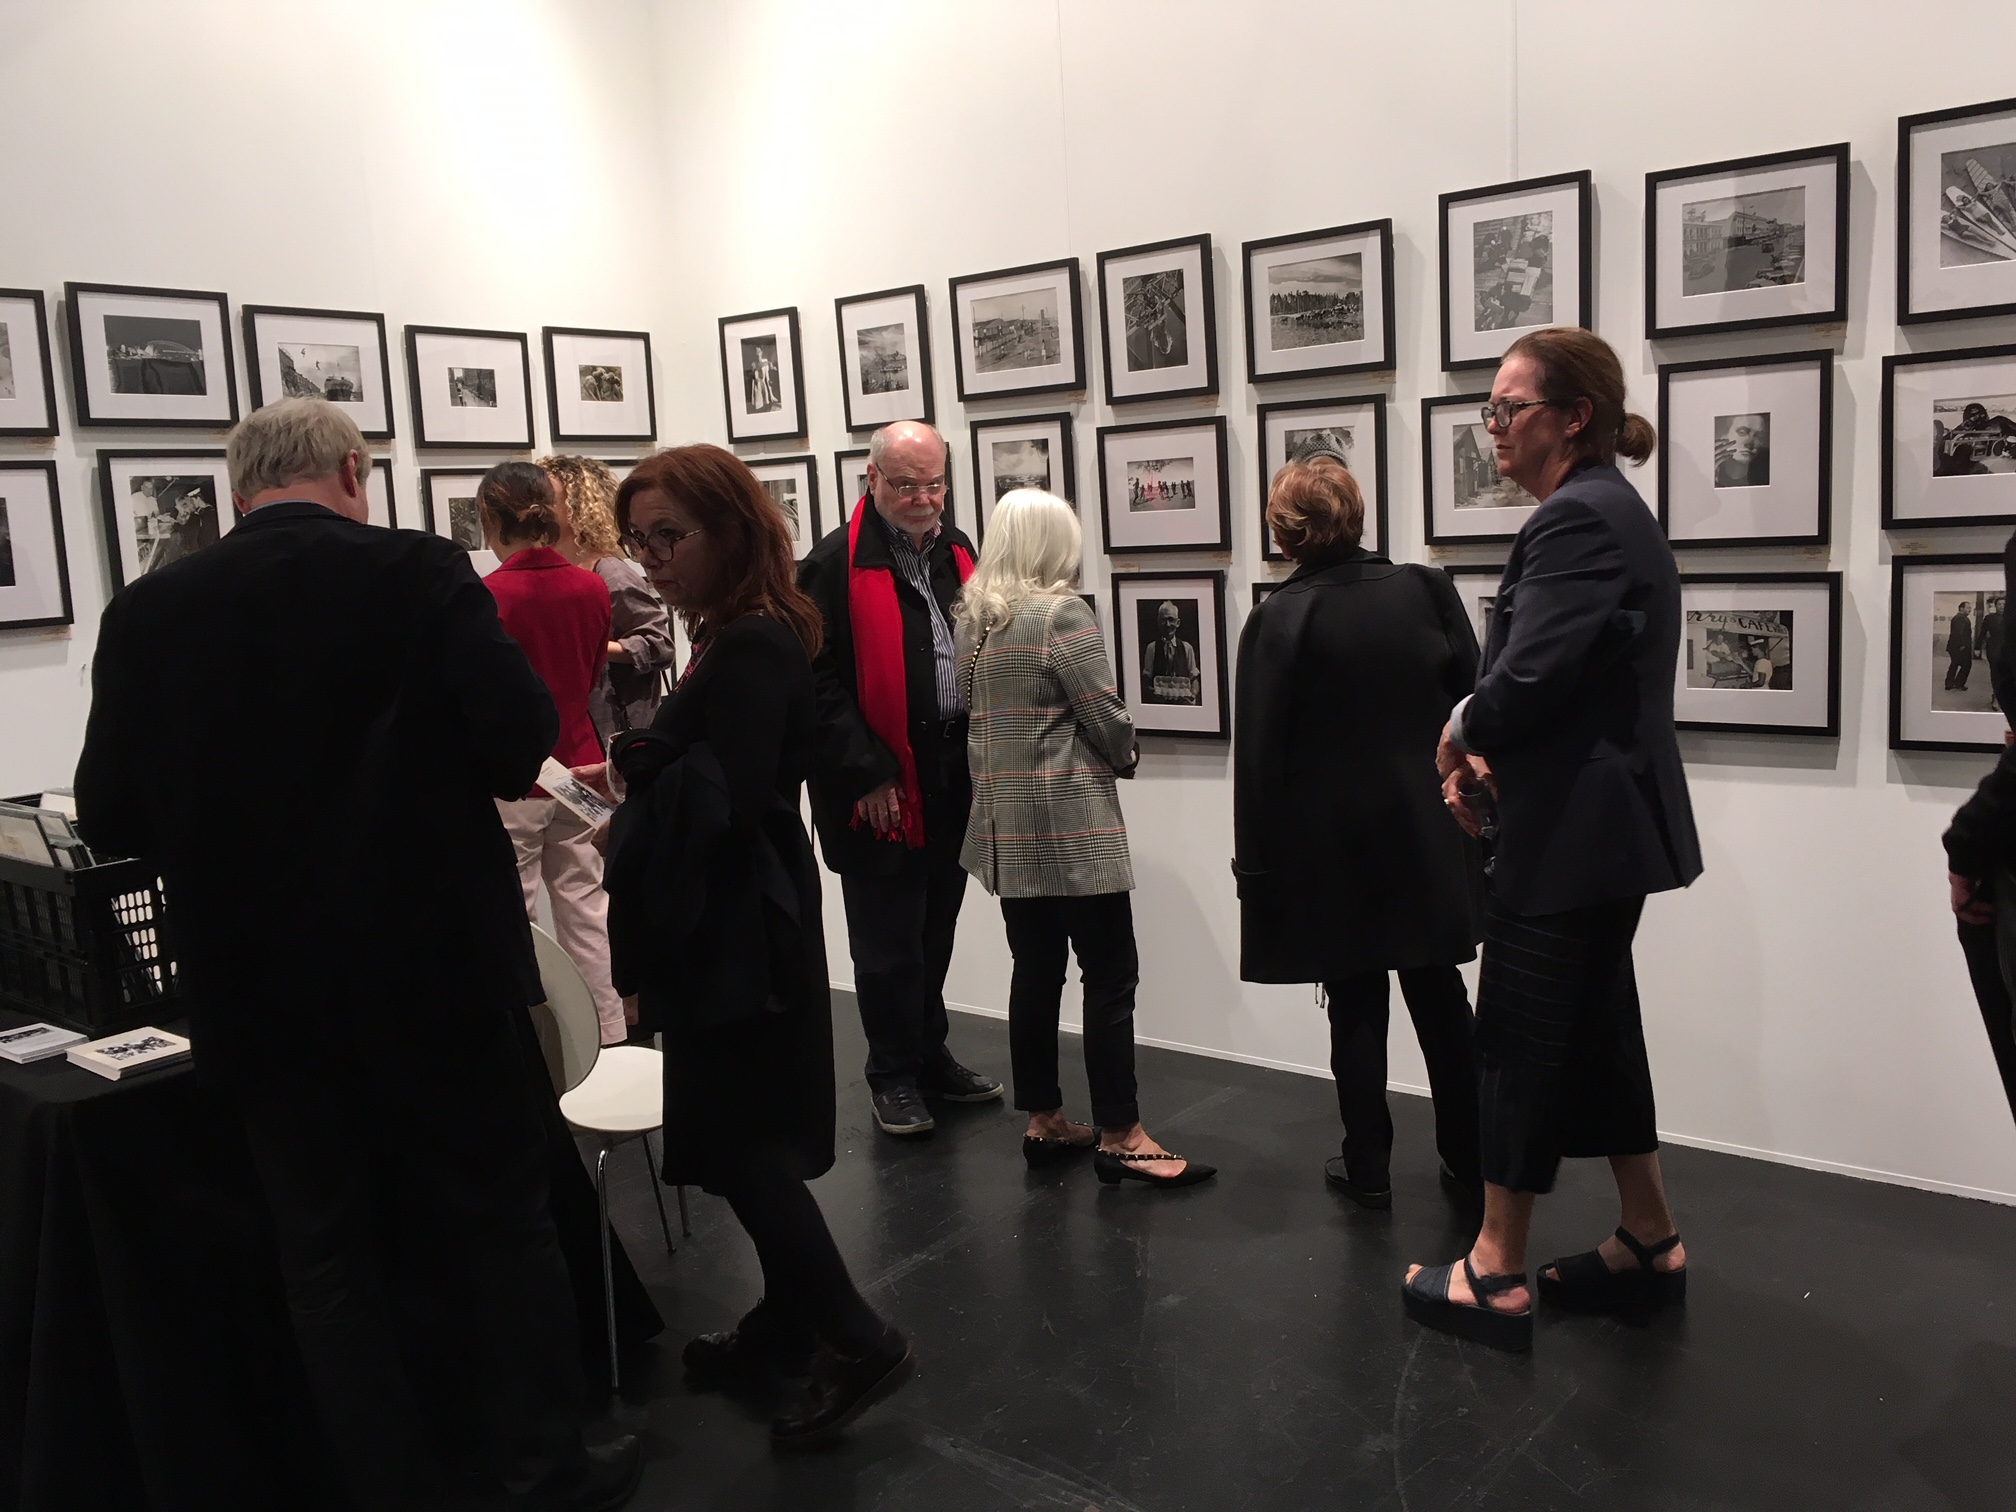 HomeToAustralia.org presents vintage photographs in its busy booth at Sydney Contemporary.